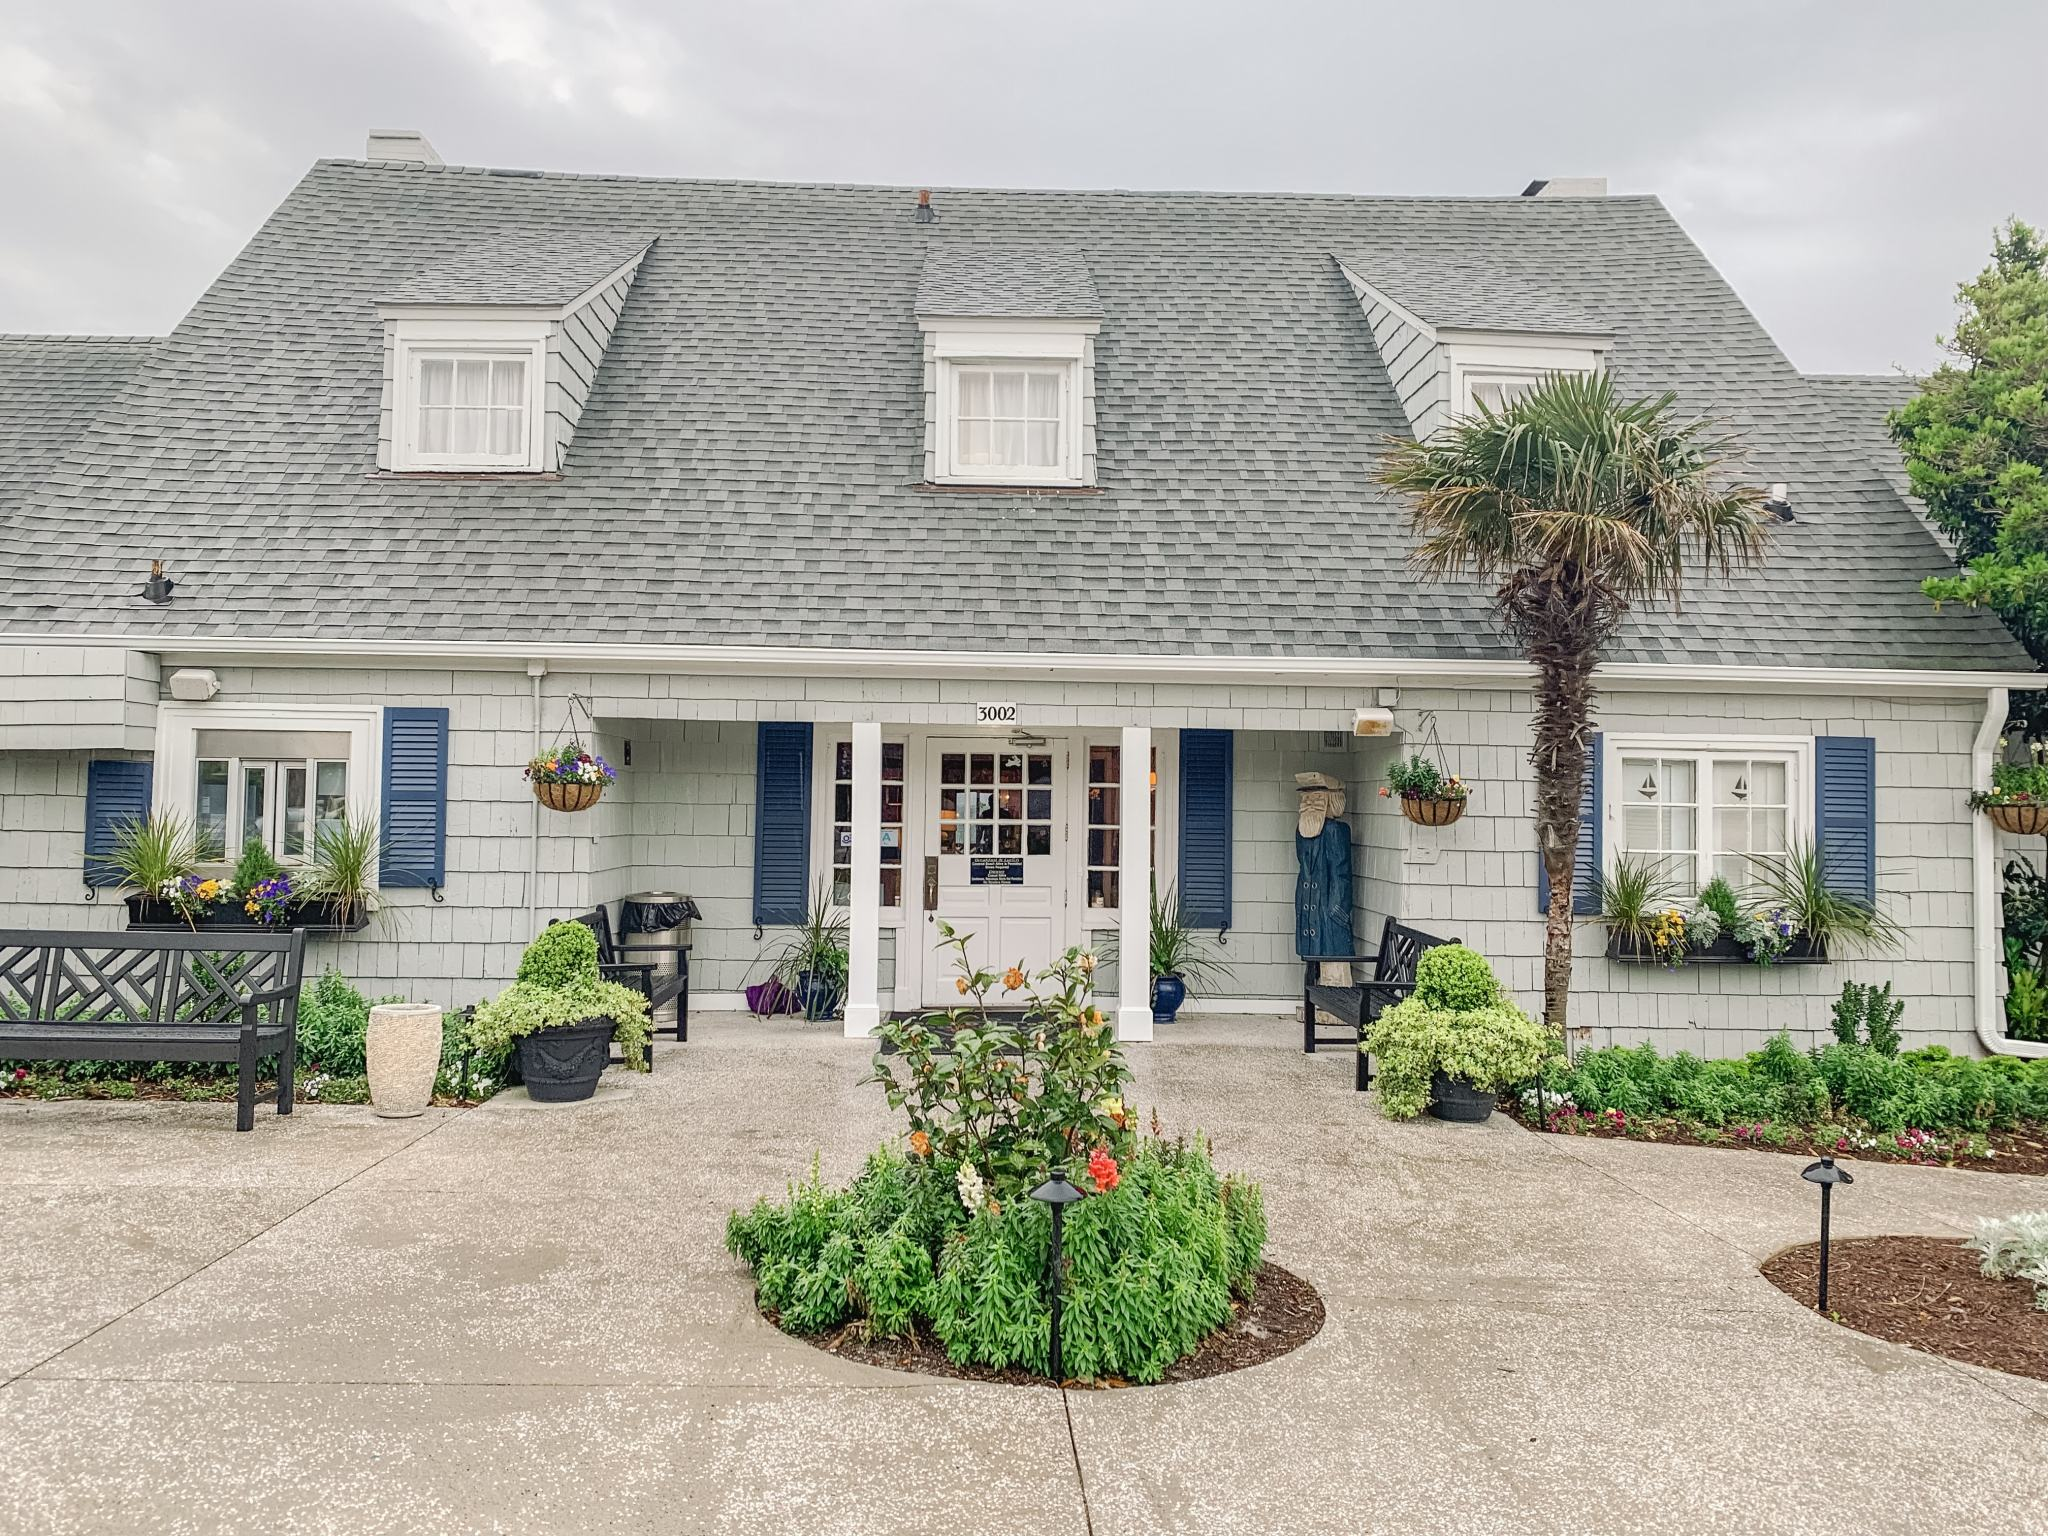 Bijuleni- Sea Captains House, Myrtle Beach